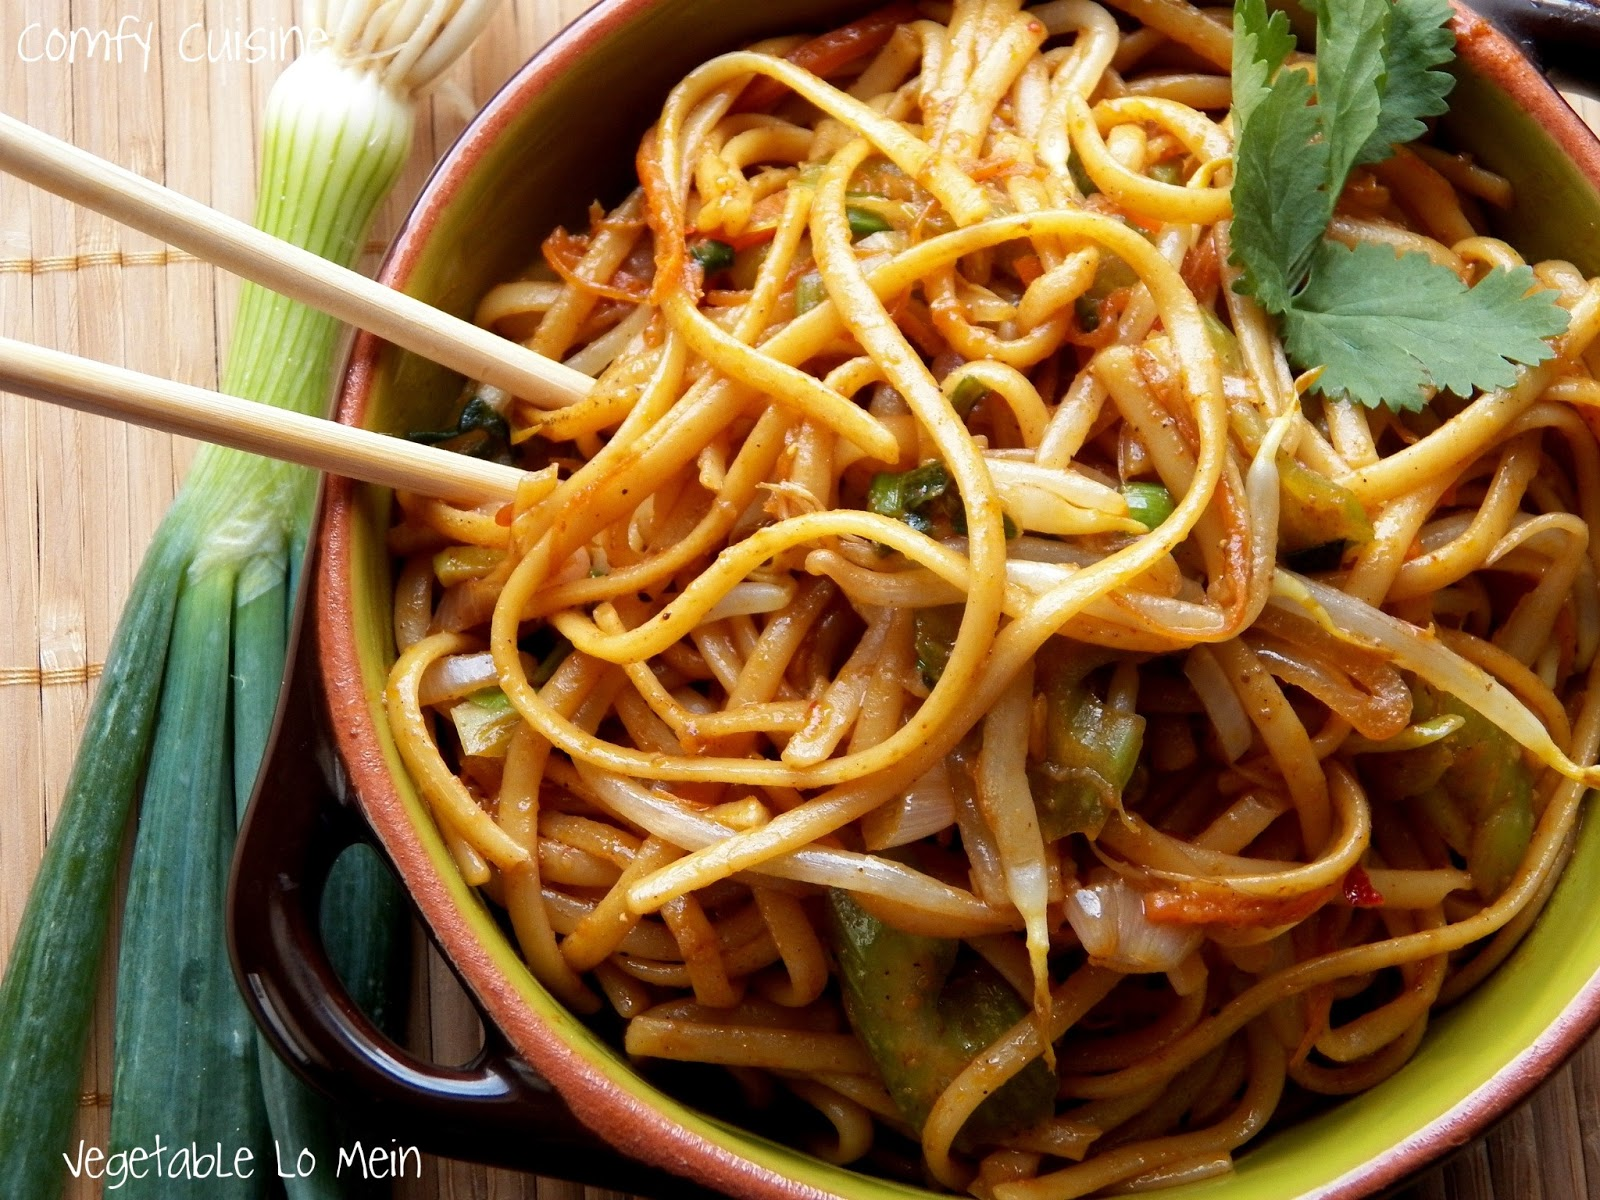 Comfy Cuisine: Vegetable Lo Mein